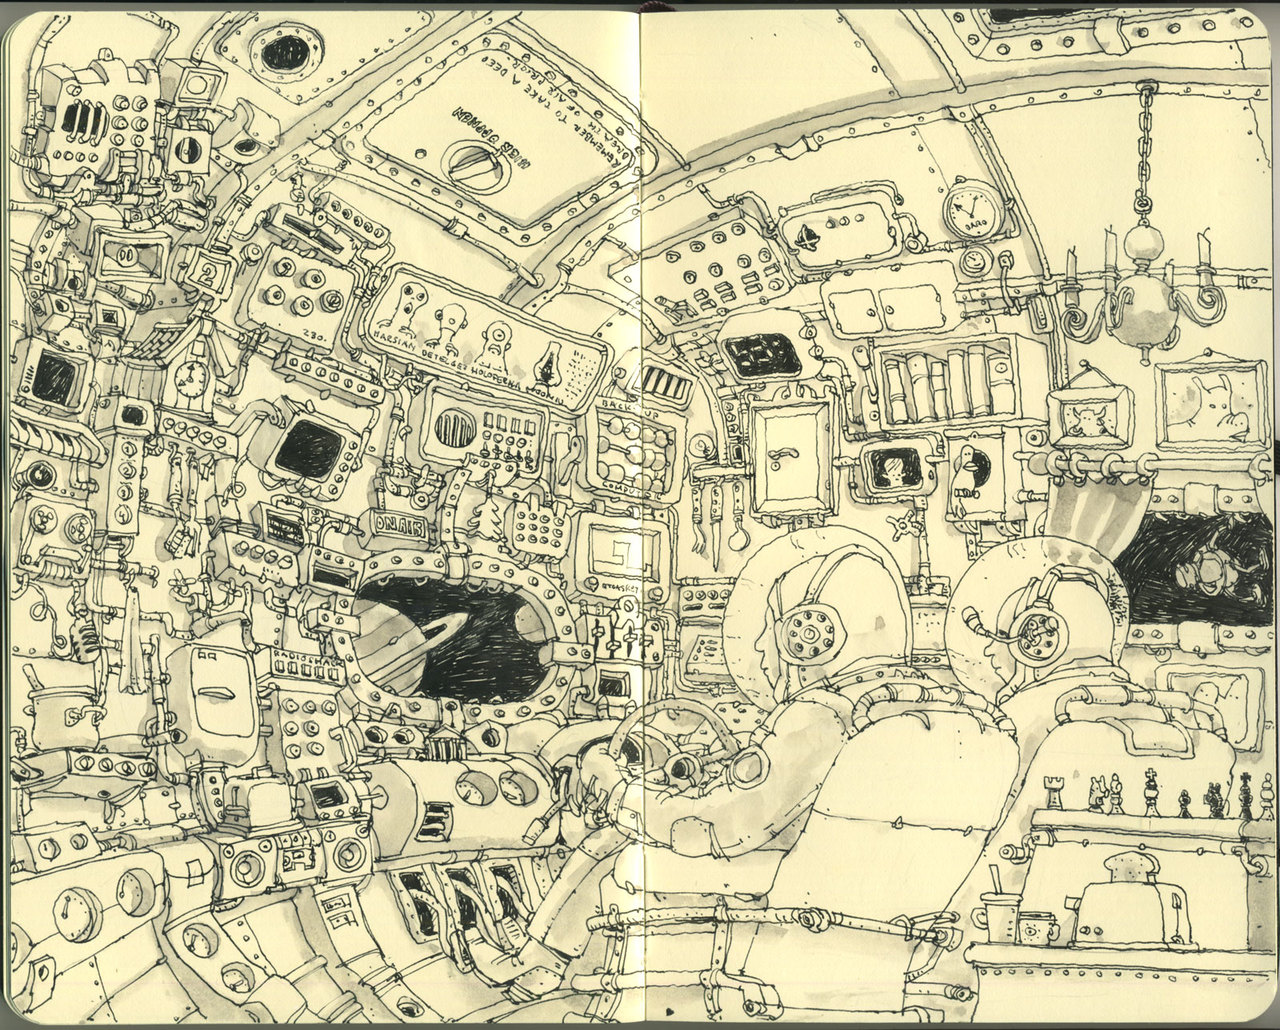 Sketchbook Illustrations by Mattias Adolfsson: b6e8ef63fb4bd31d837b4bf1cbab47d4.jpg